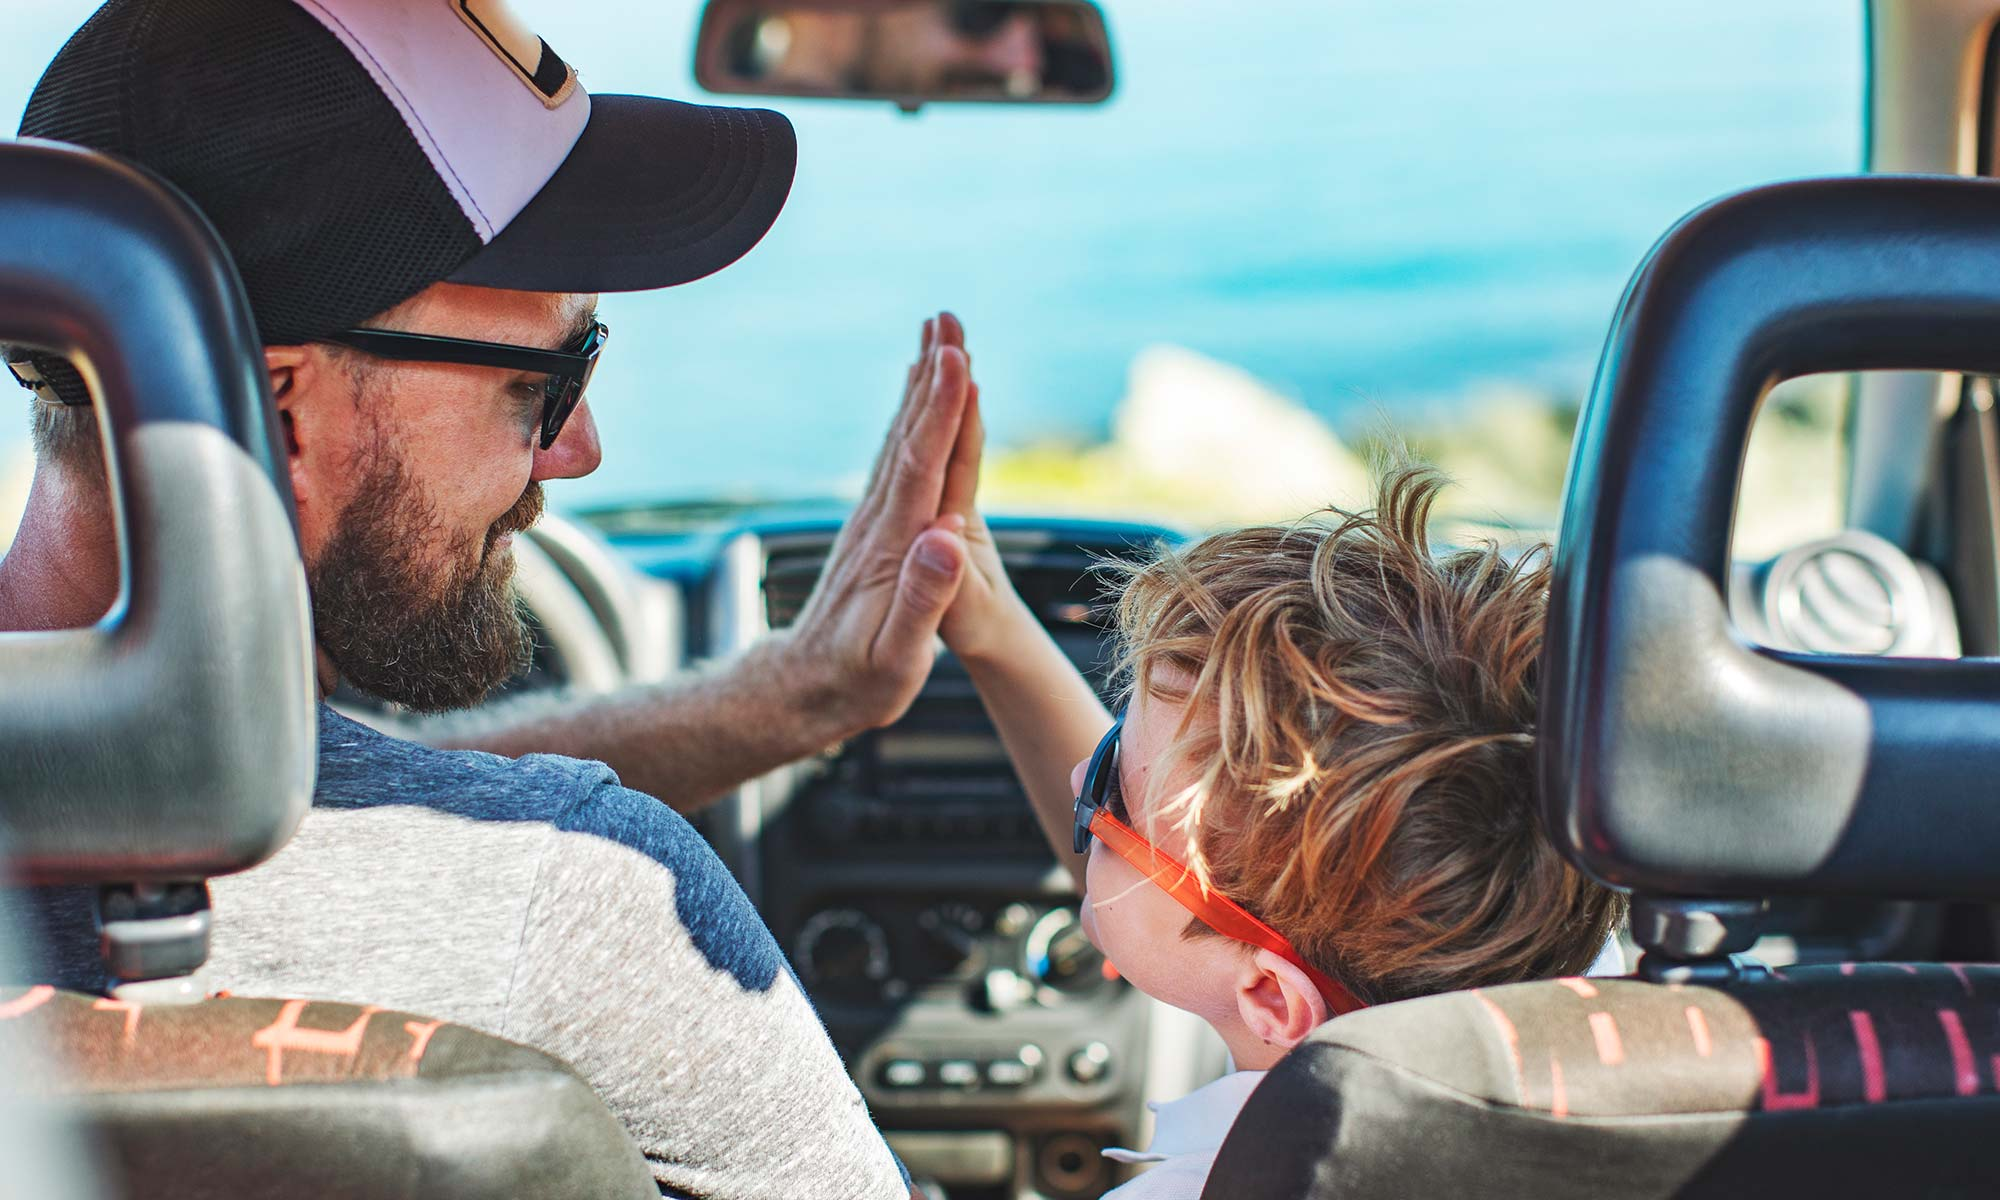 A father and son high-fiving each other in their car.